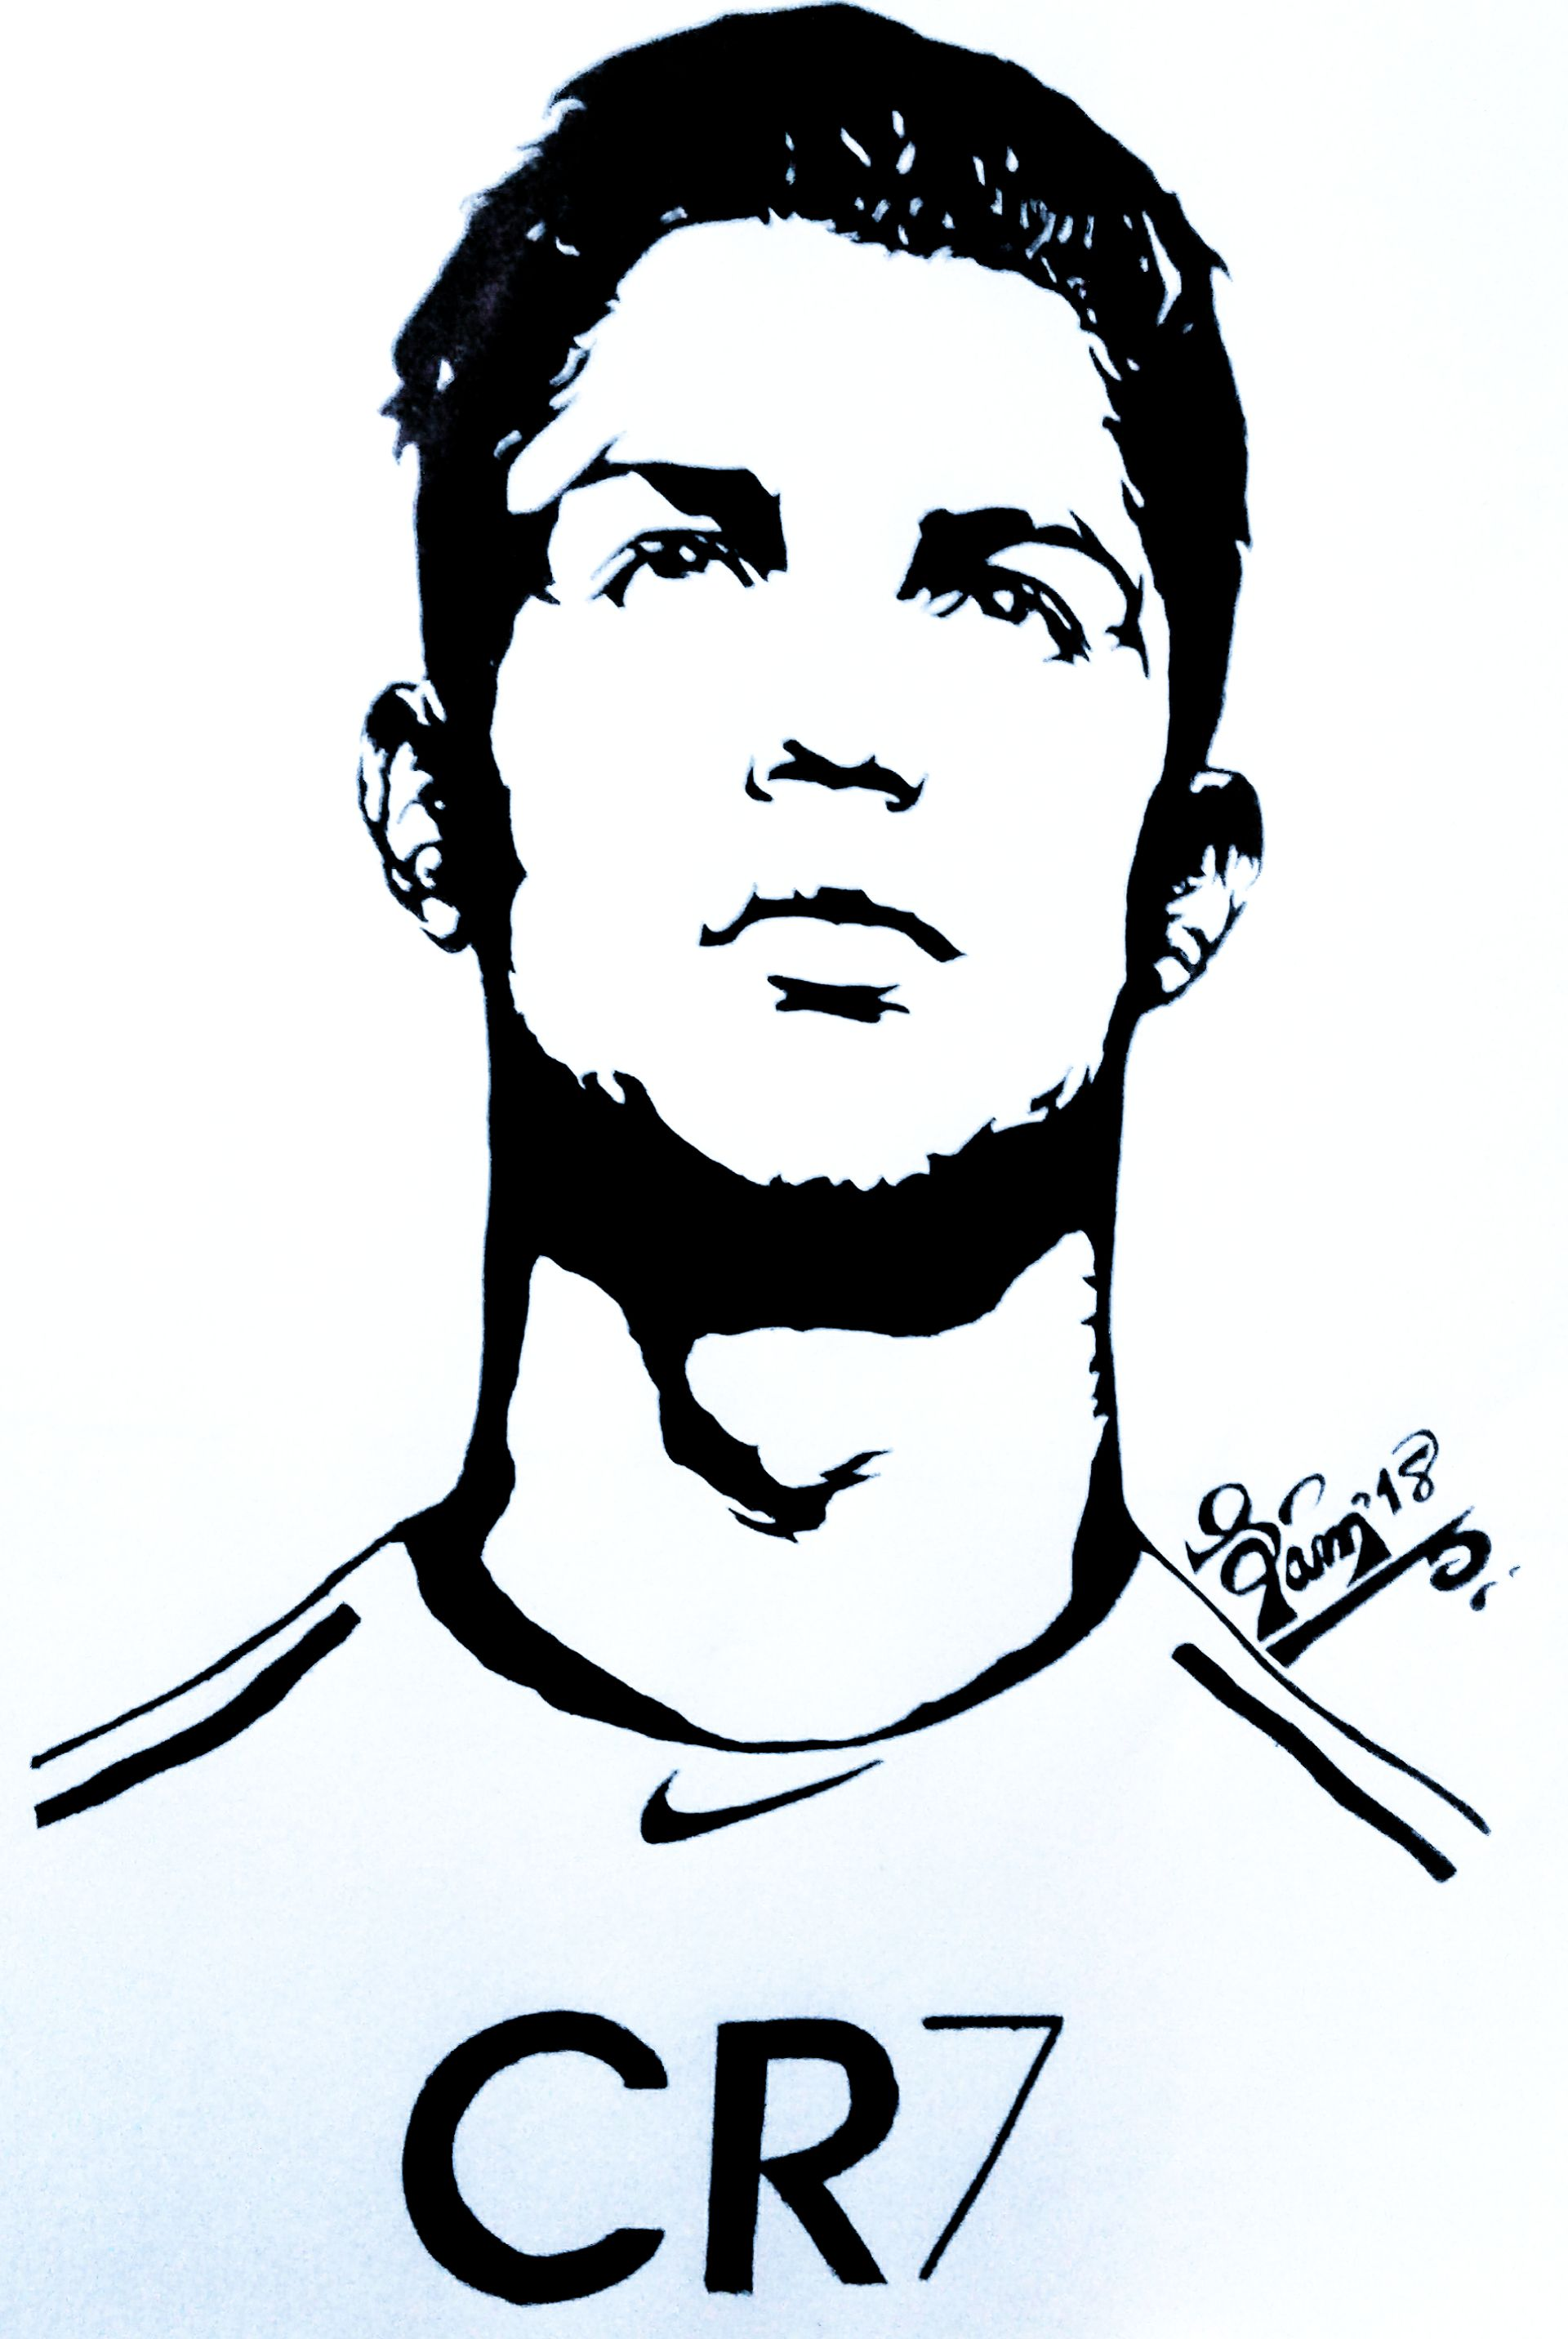 Cristiano ronaldo artwork artwork sketch draw passion cr7 juventus fc